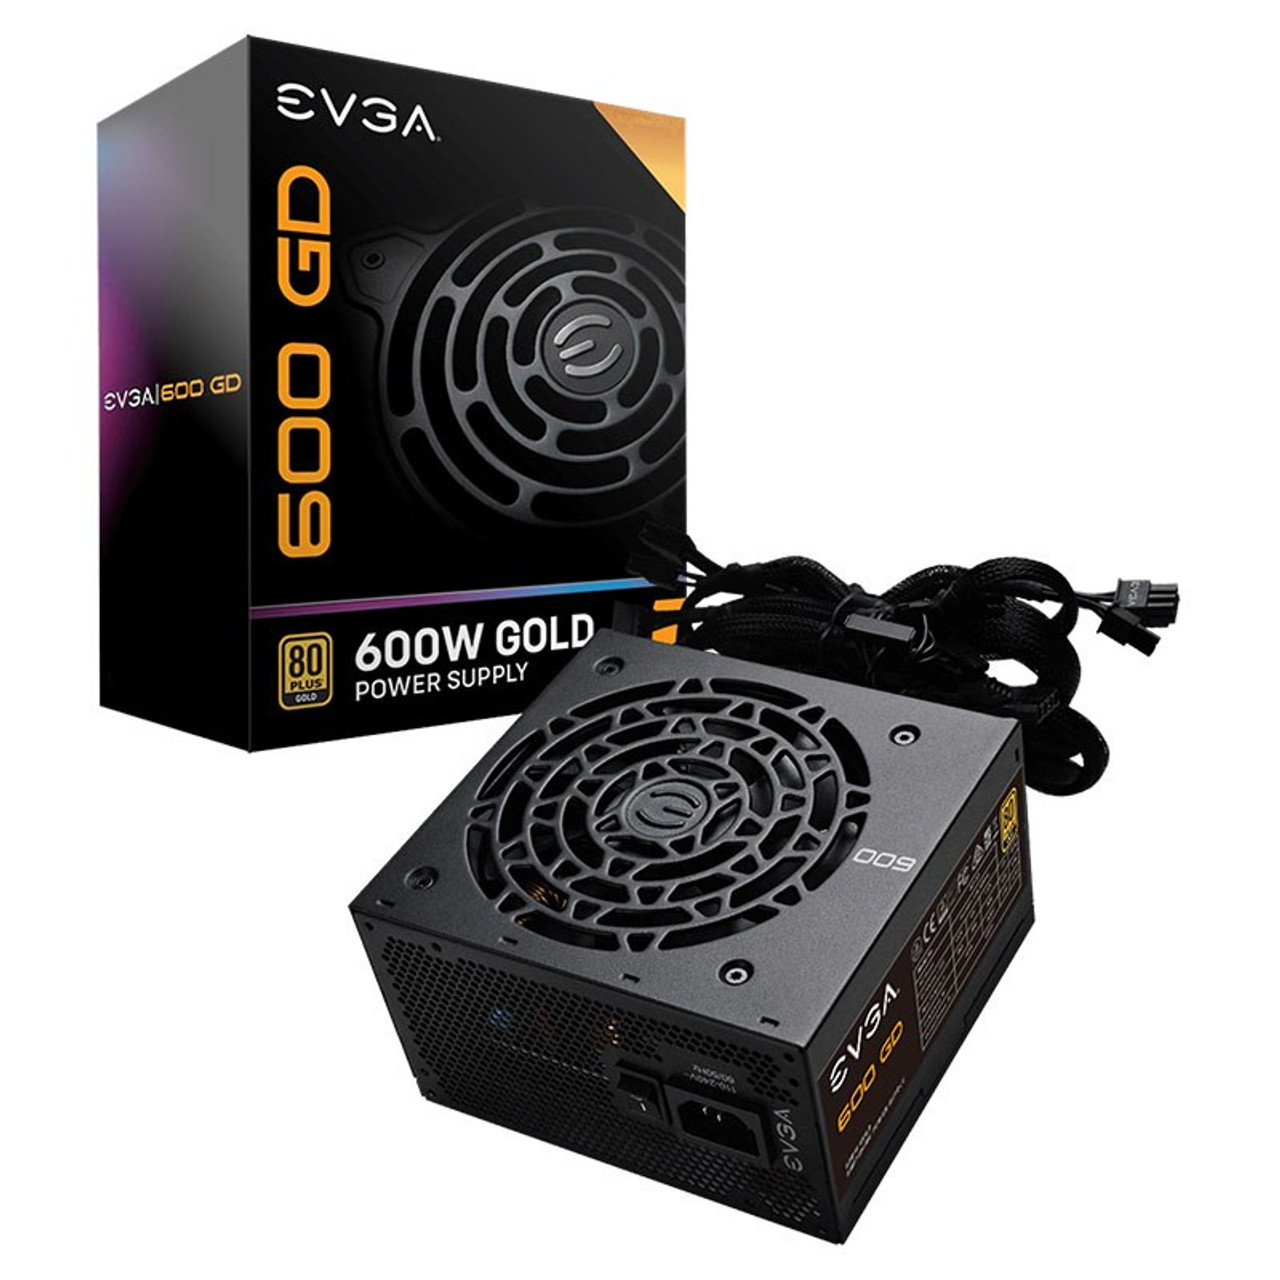 Image for EVGA 600 GD 600W 80+ Gold Non-Modular Power Supply CX Computer Superstore